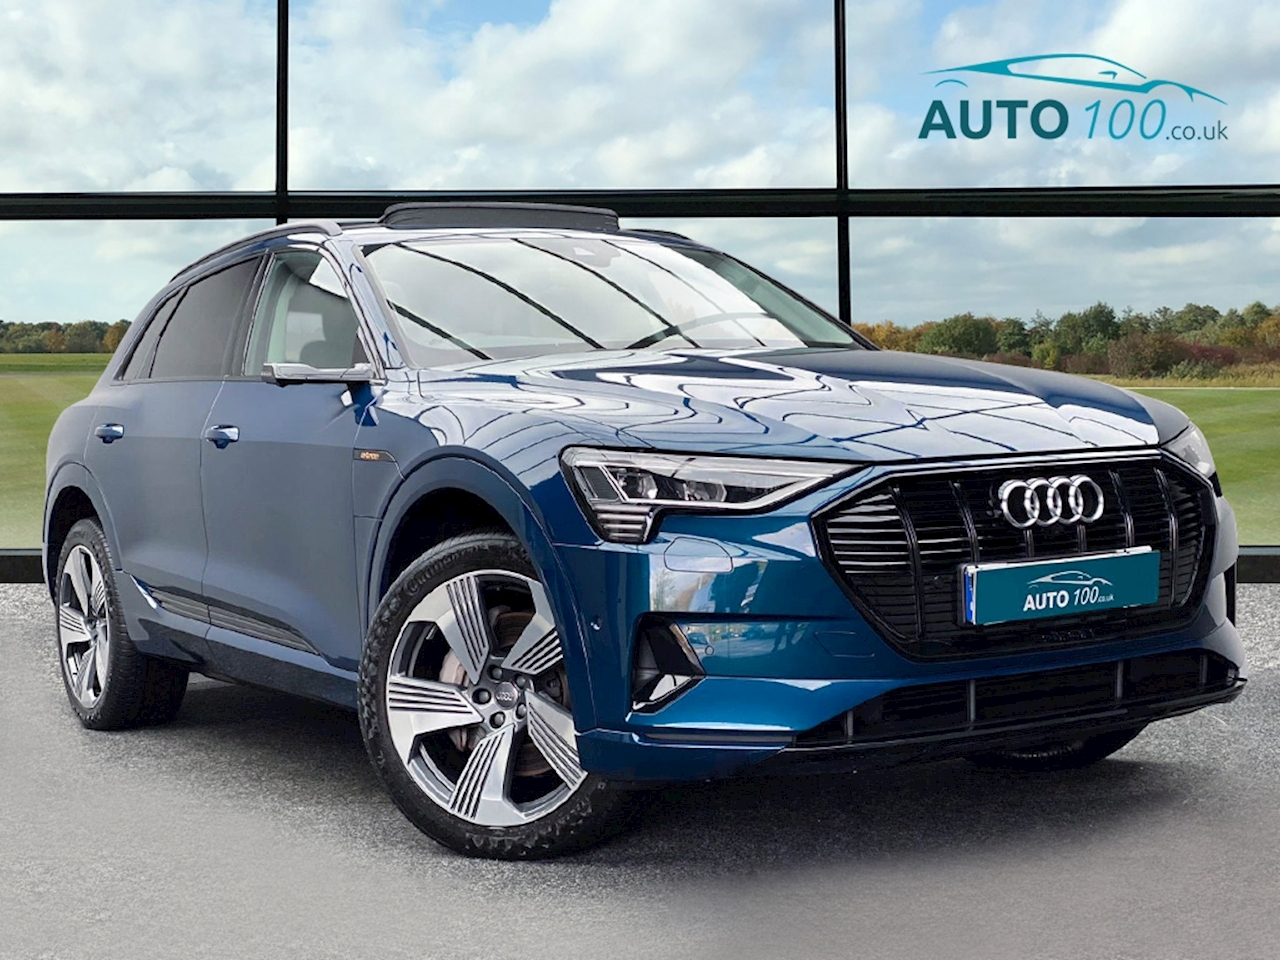 Audi 55 Launch Edition SUV 5dr Electric Auto quattro 95kWh (408 ps)